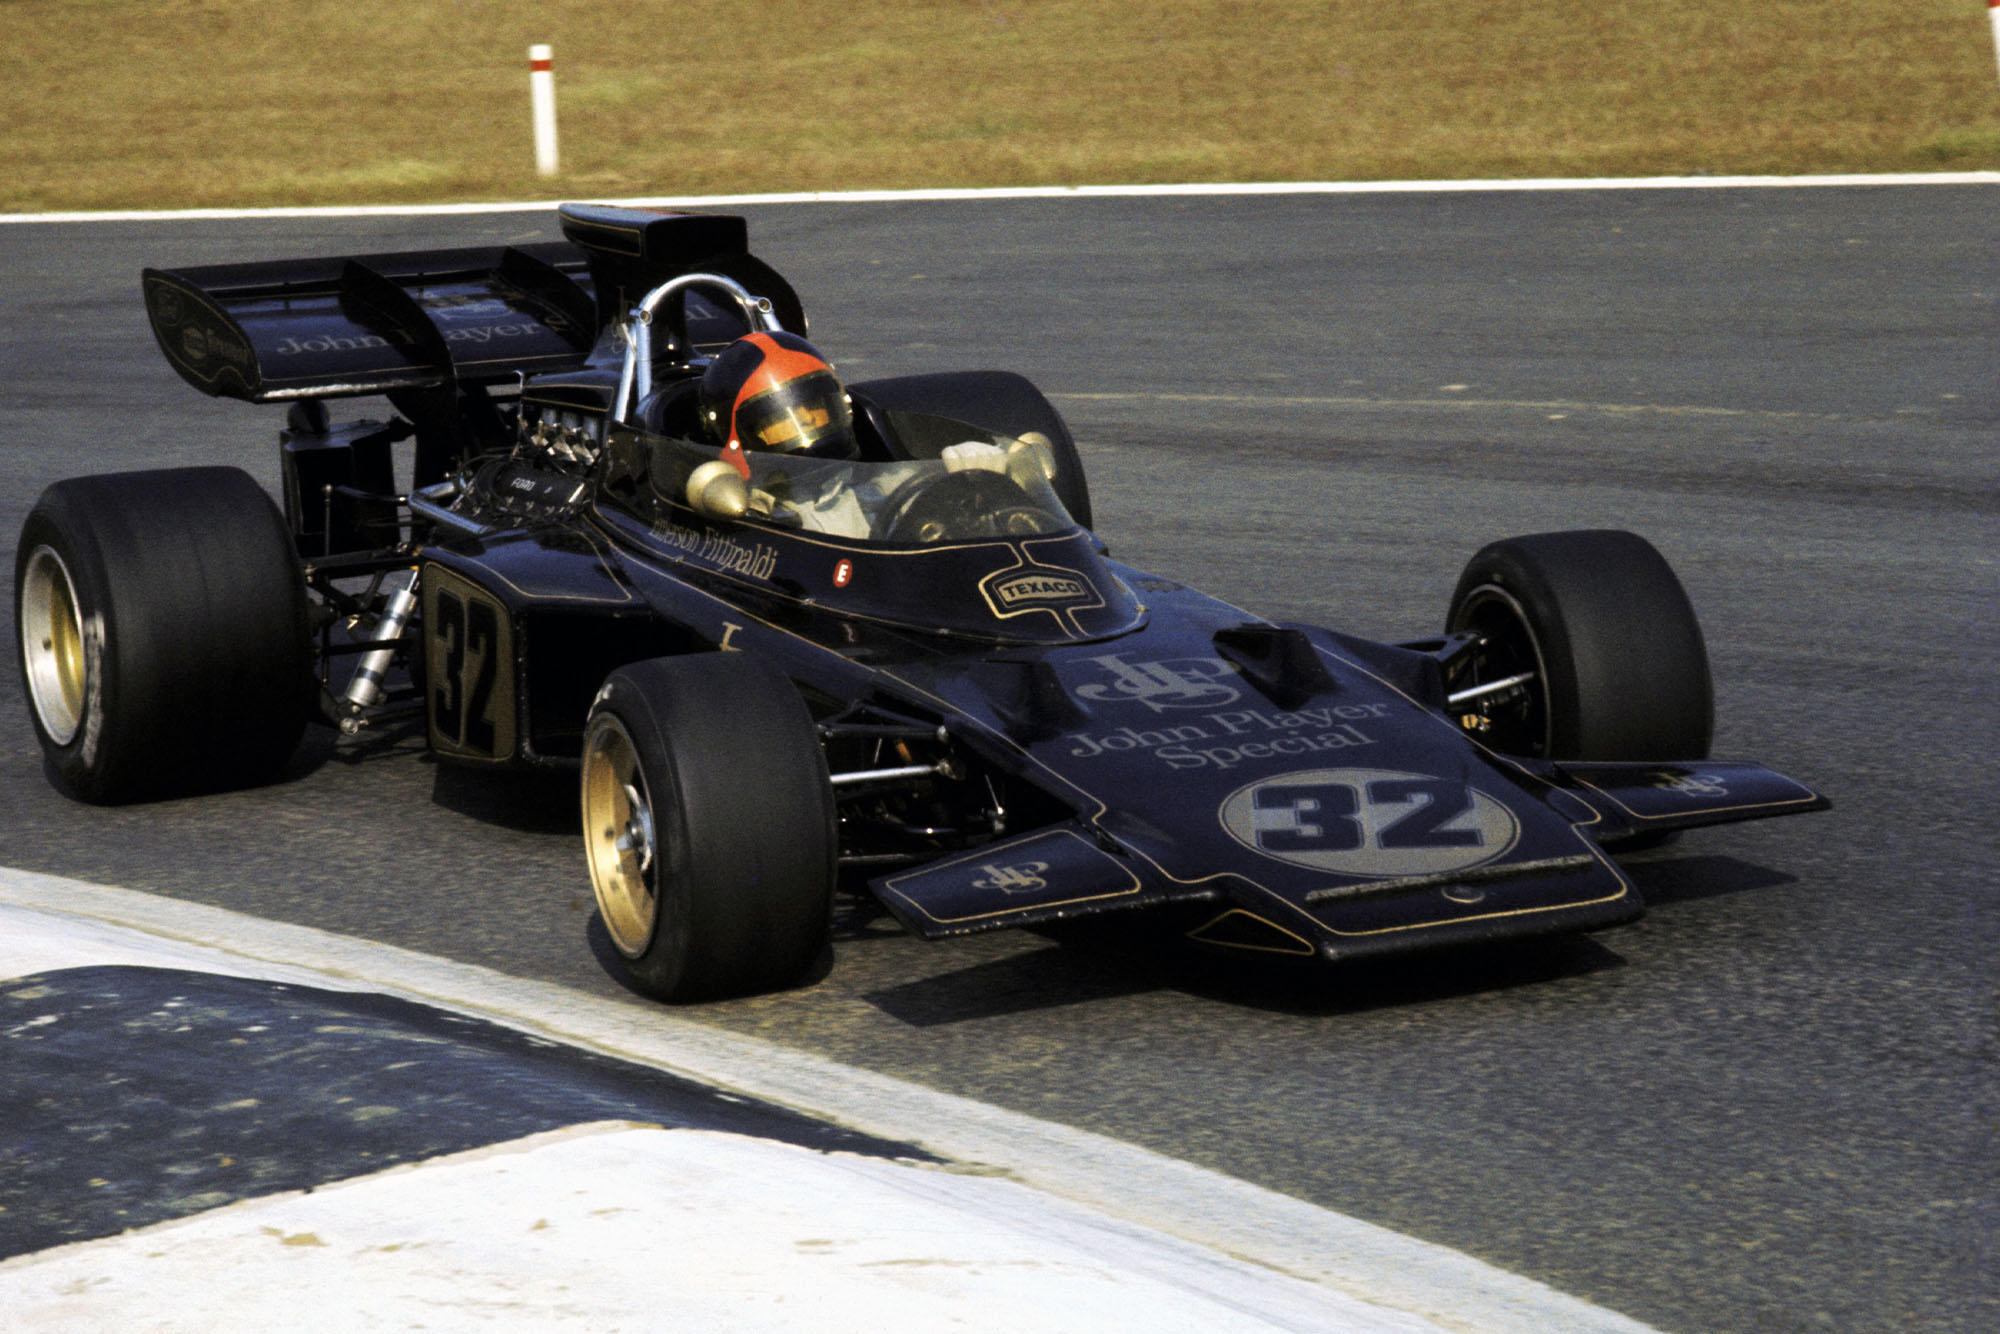 Lotus' Emerson Fittipaldi on his way to victory at the 1972 Belgian Grand Prix.